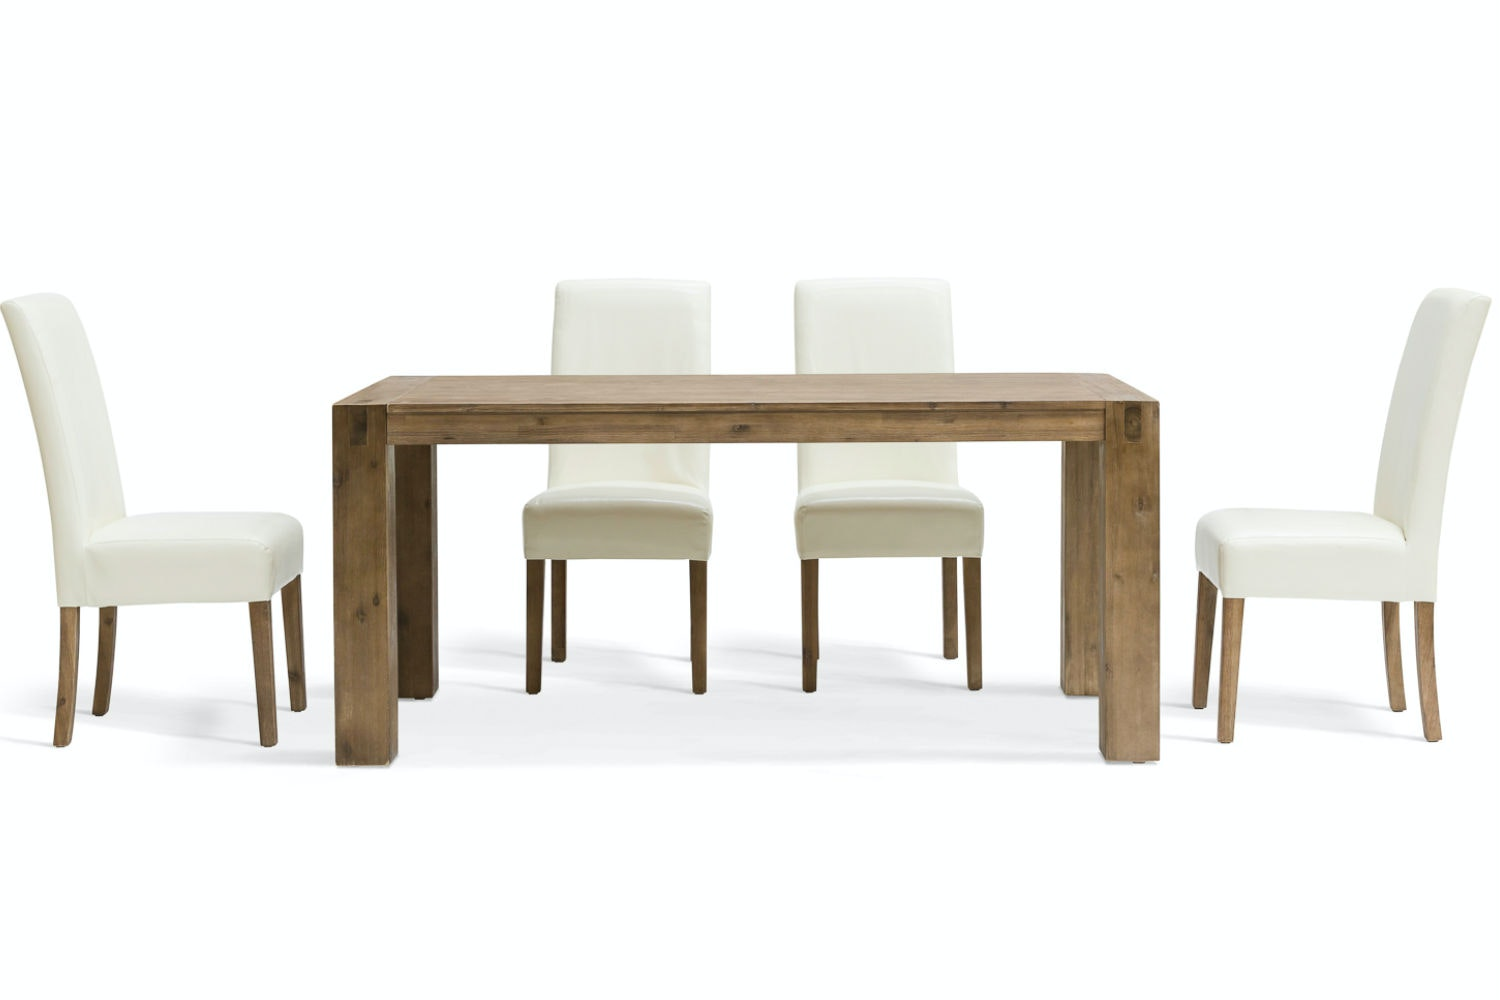 Hamburg 5-Piece Dining Set | Hamburg Chair